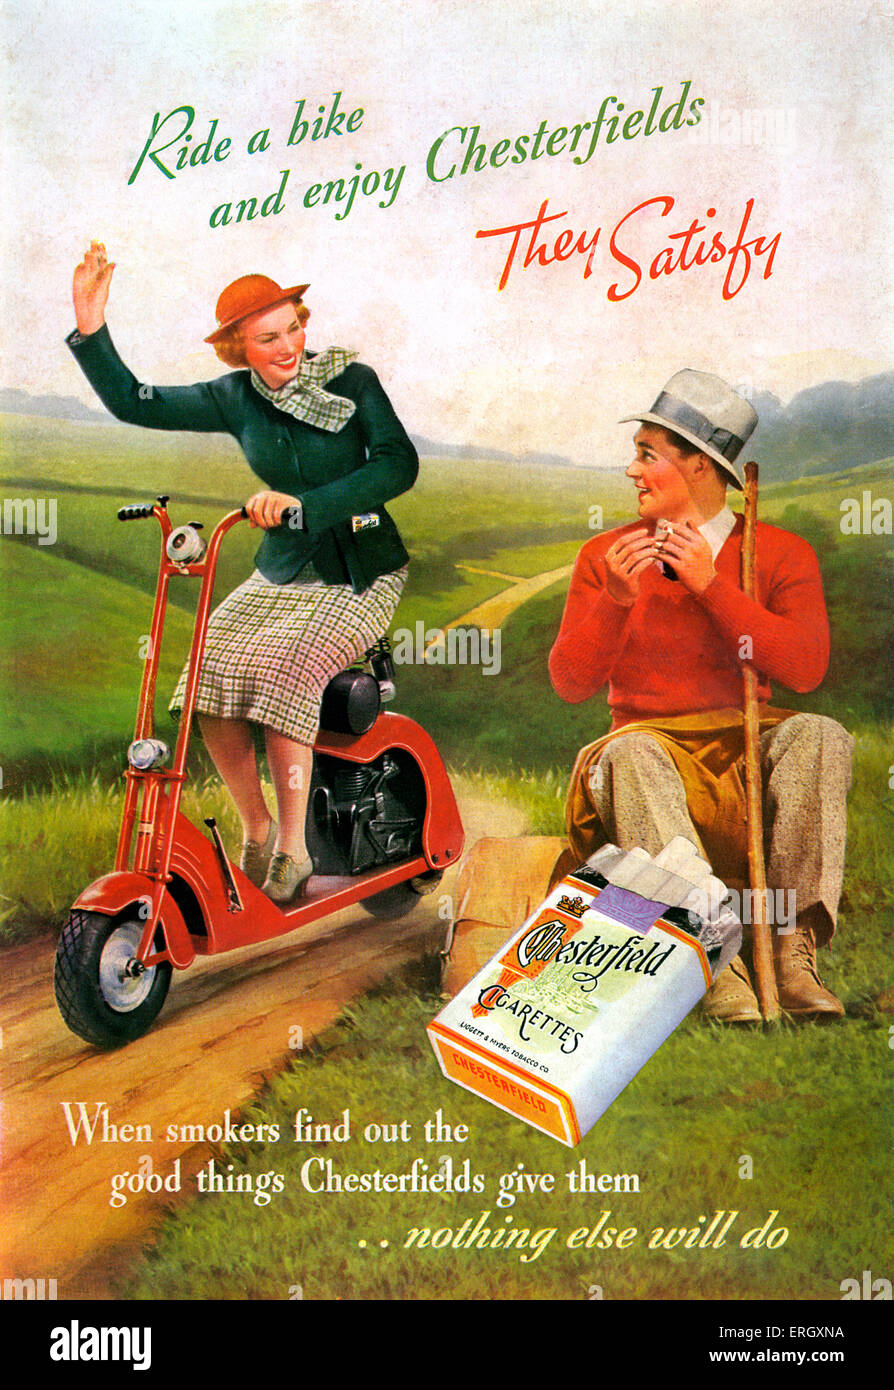 Chesterfield cigarettes' advertisement. Caption reads: 'Ride a bike and enjoy Chesterfields. They satisfy. - Stock Image